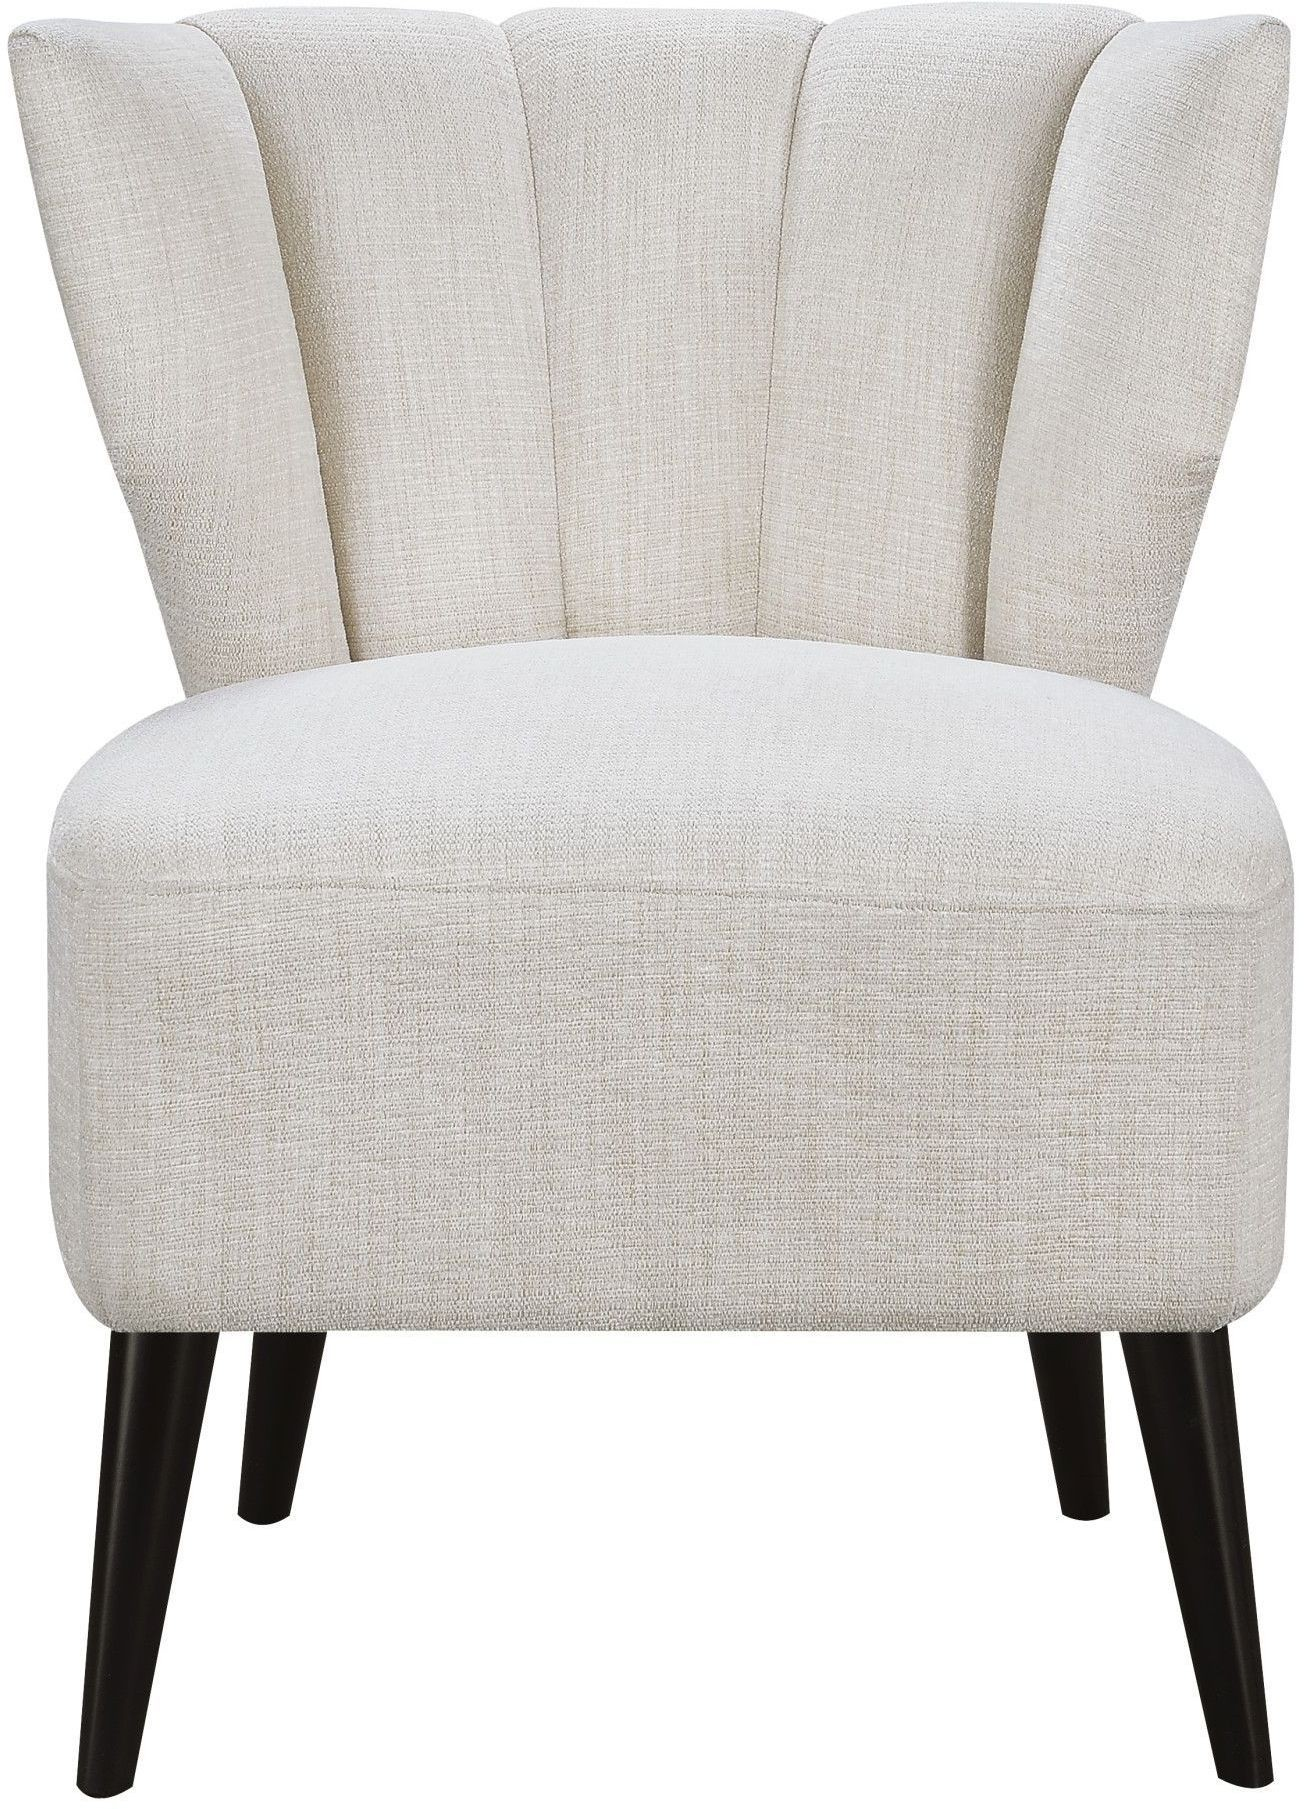 Joelle Cream Accent Chair From Emerald Home Coleman Furniture